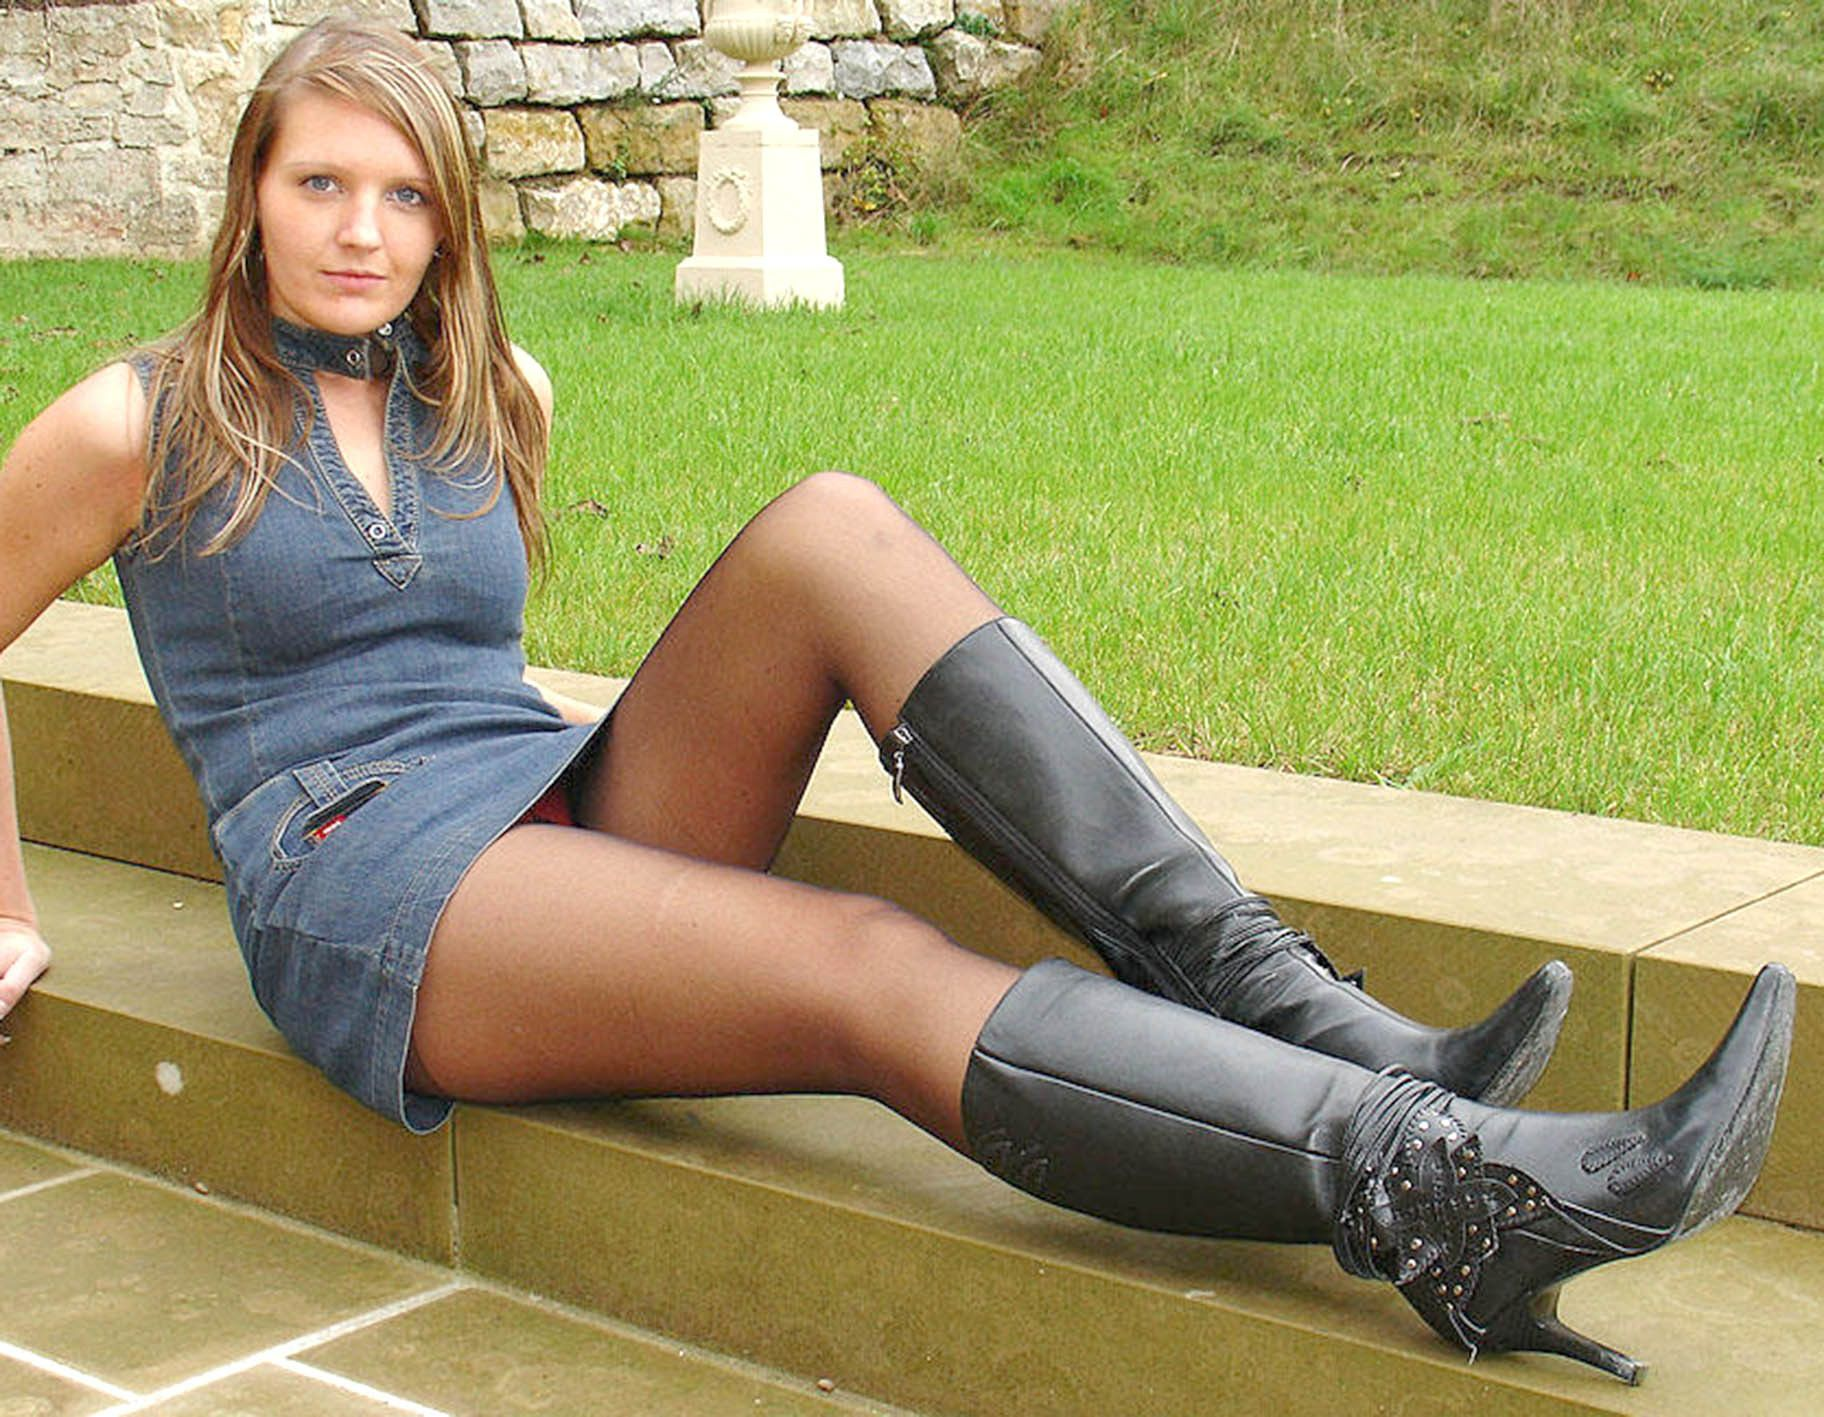 Amateur pantyhose personal websites